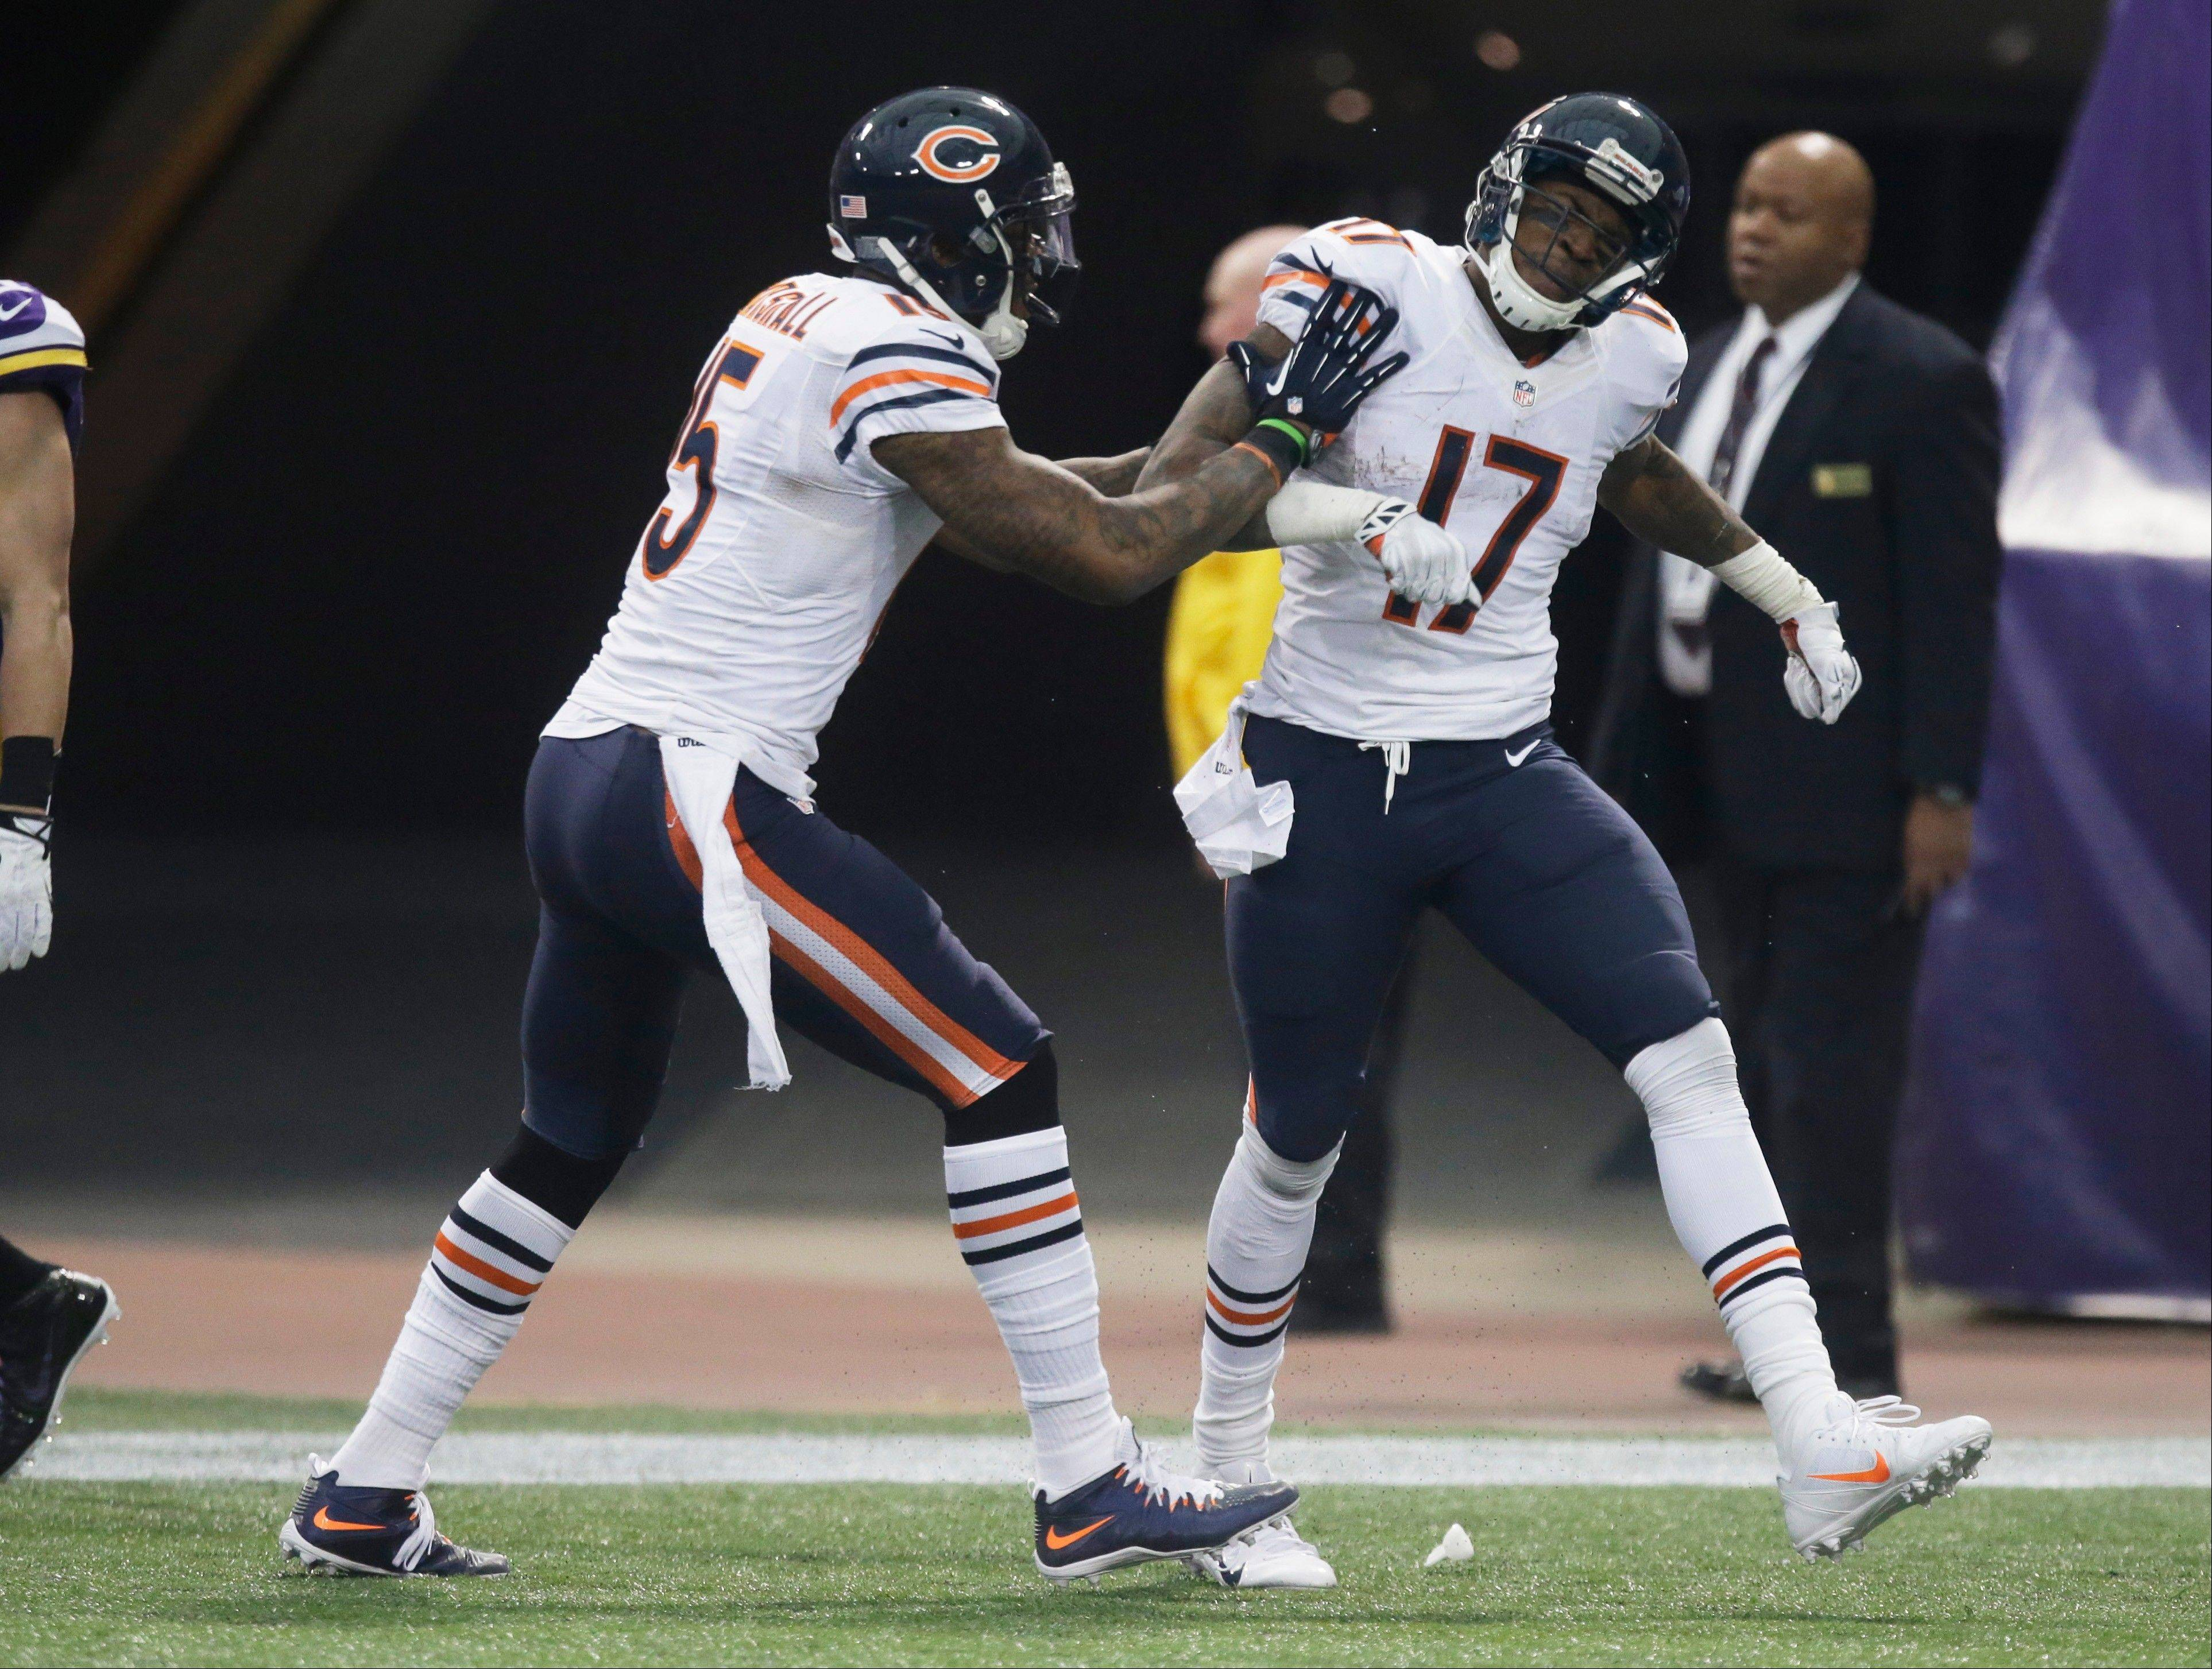 Chicago Bears wide receiver Alshon Jeffery (17) celebrates with teammate Brandon Marshall after catching a 46-yard touchdown pass during the second half.